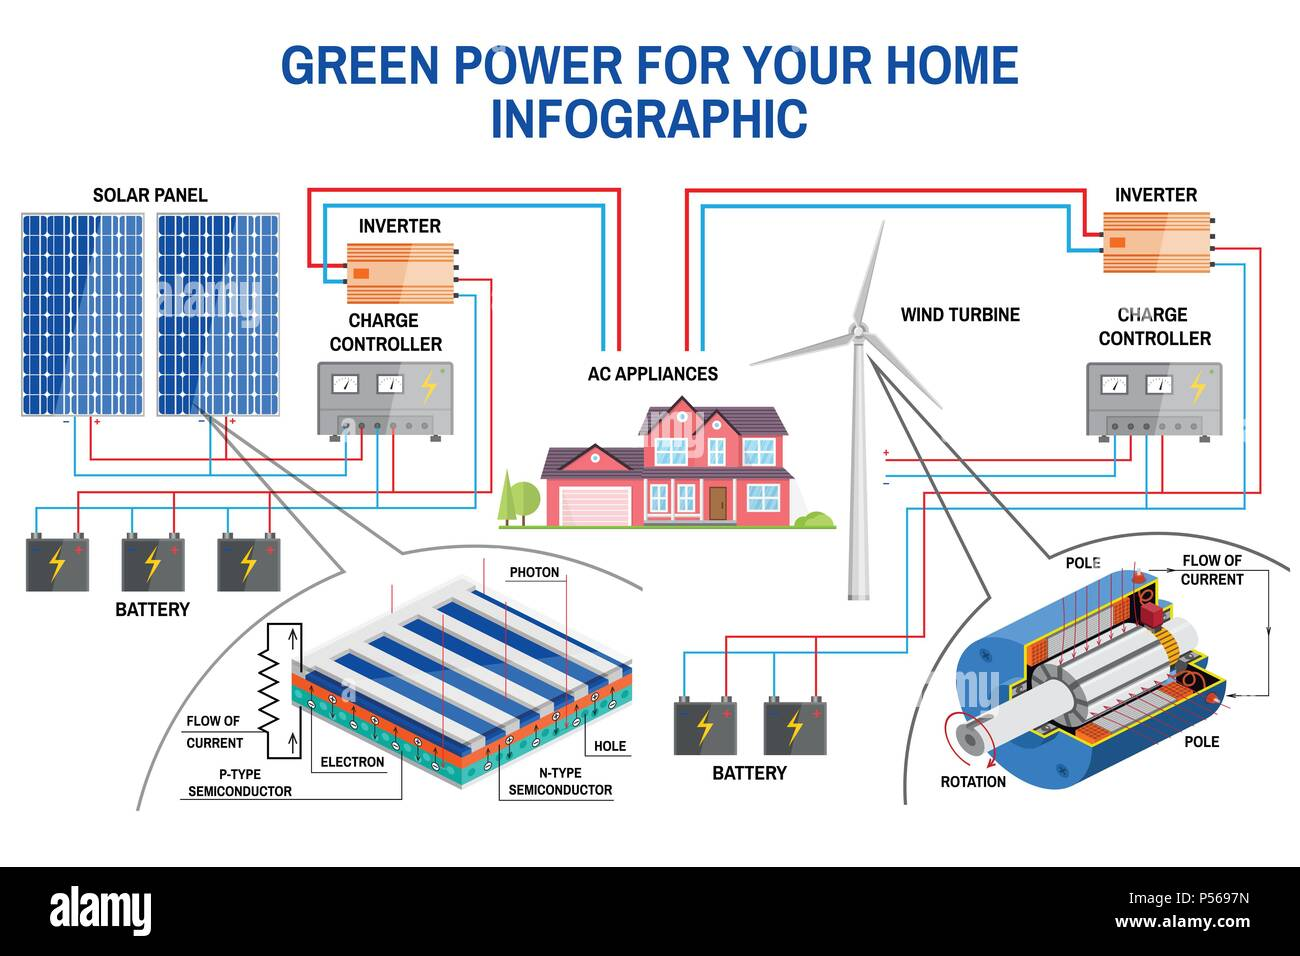 Miraculous Solar Panel And Wind Power Generation System For Home Infographic Wiring Cloud Tziciuggs Outletorg